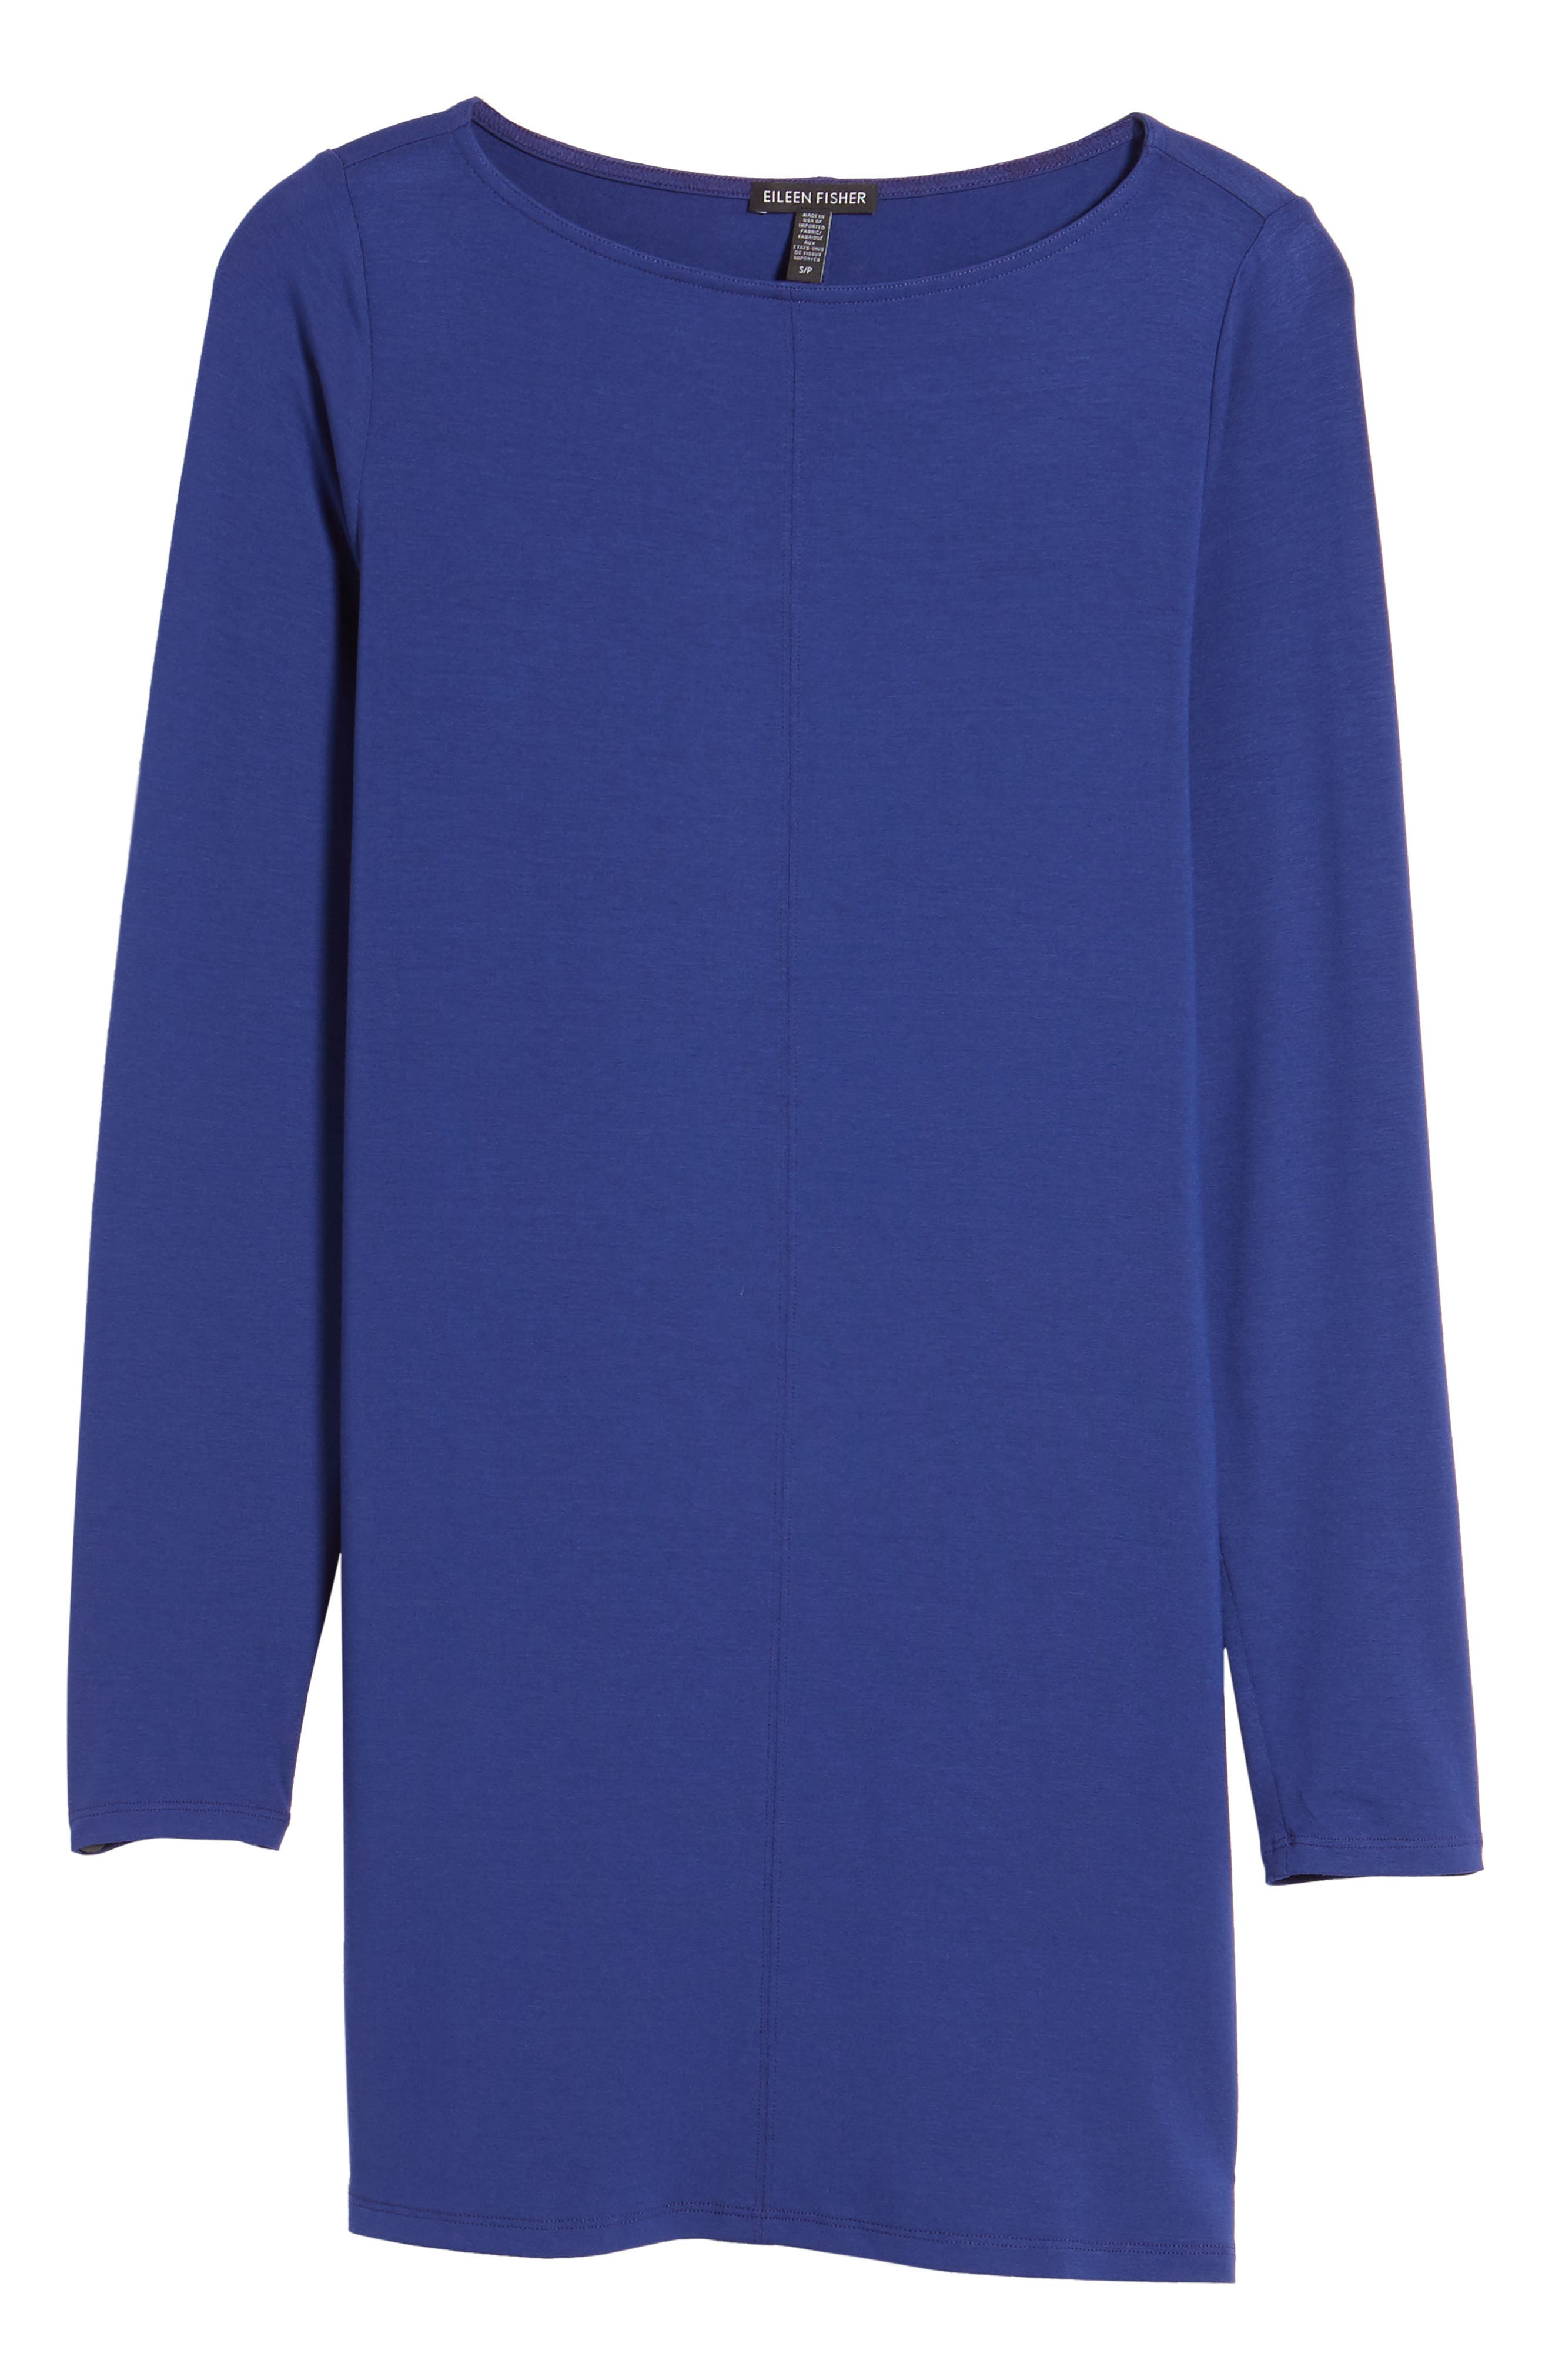 Jersey Bateau Neck Tunic,                             Alternate thumbnail 6, color,                             351